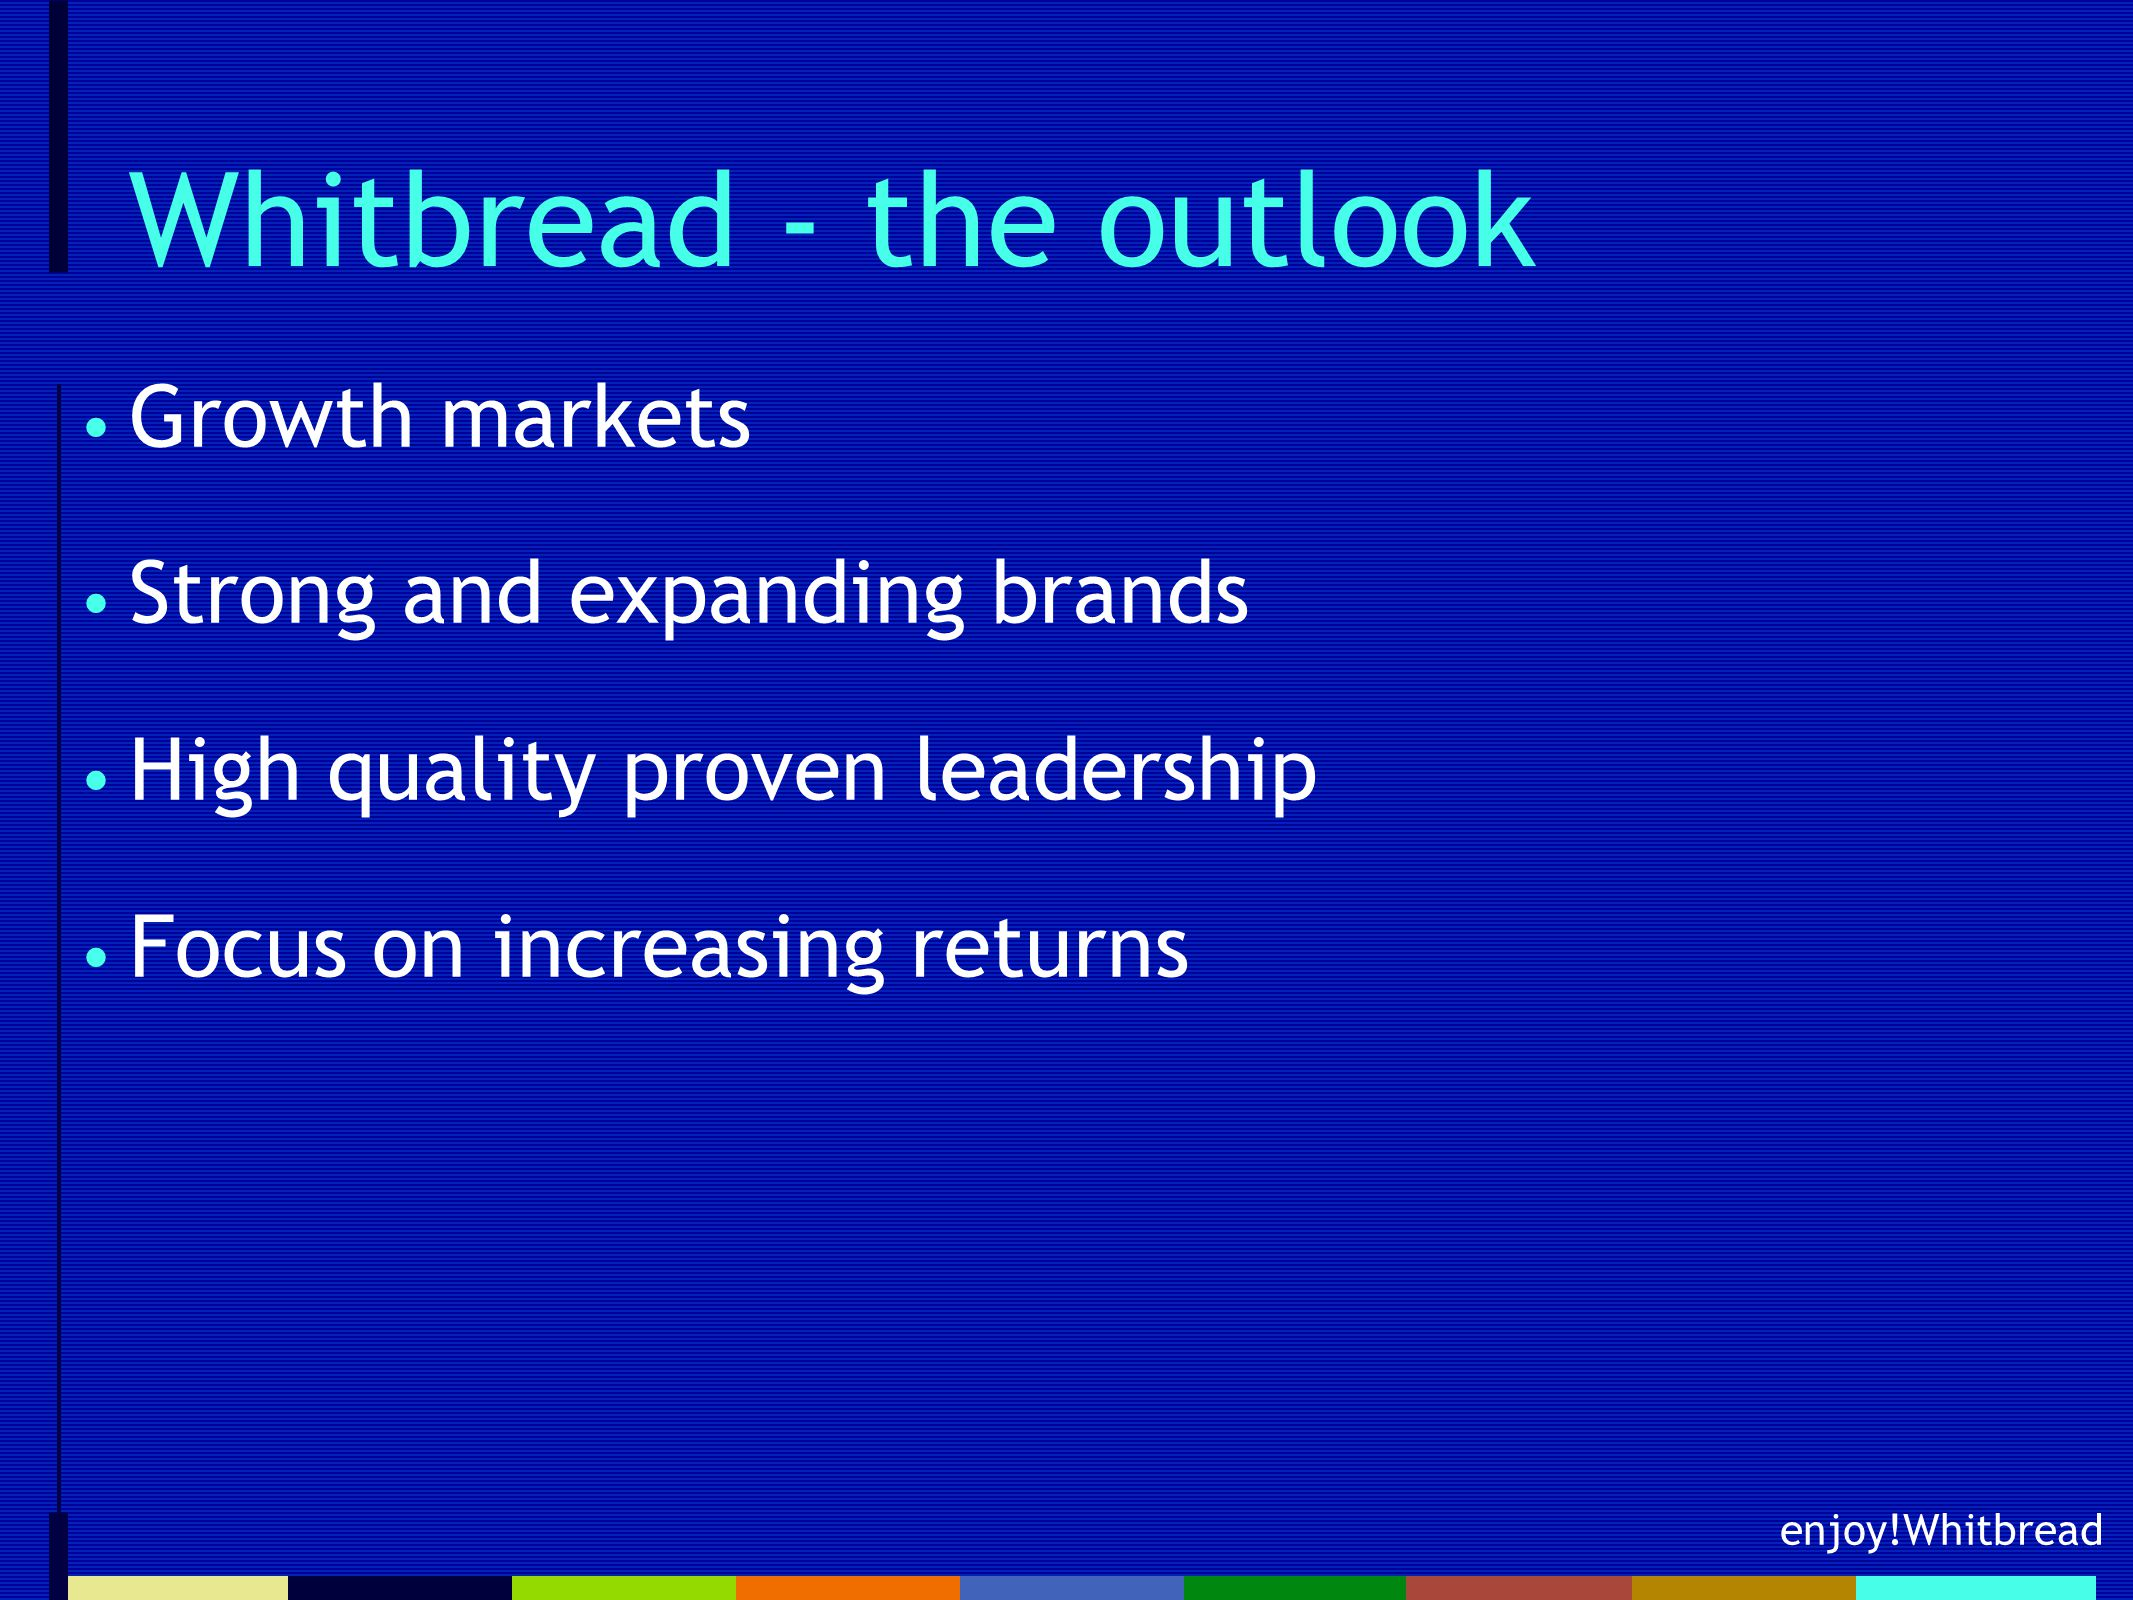 enjoy!Whitbread Whitbread - the outlook Growth markets Strong and expanding brands High quality proven leadership Focus on increasing returns